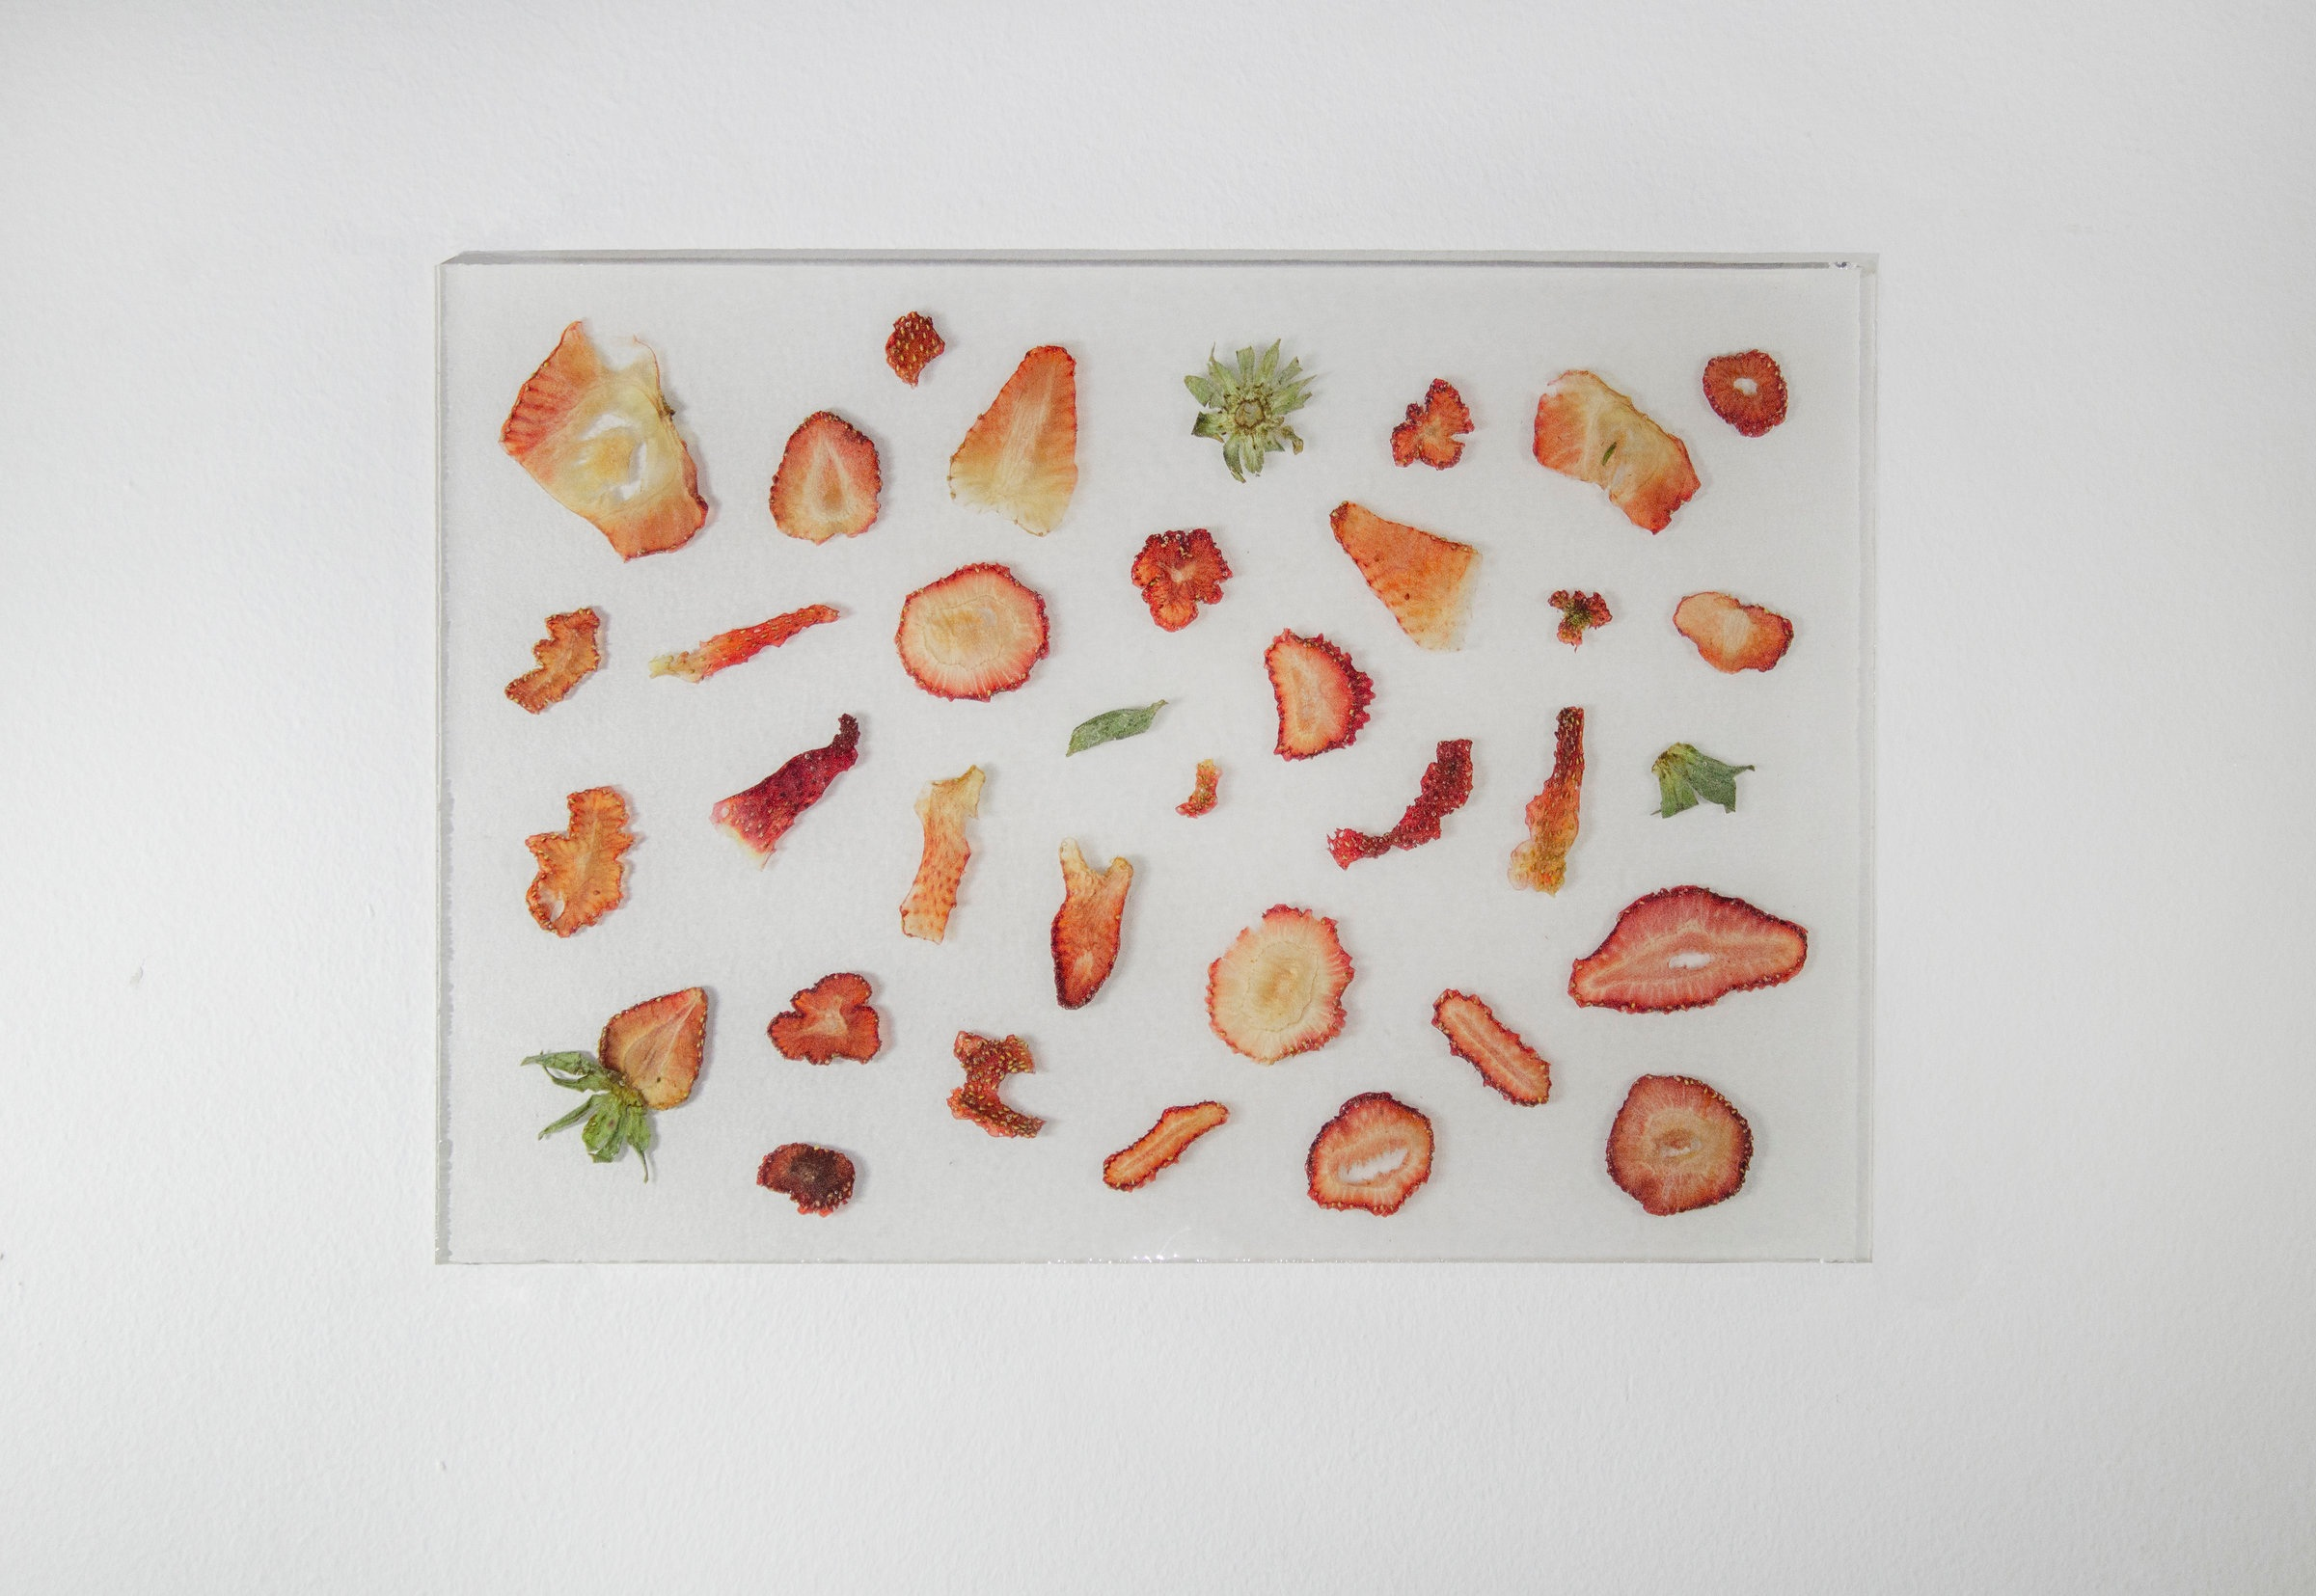 Strawberry Slices Encased in Resin From the H&R Block Artspace 2018 KC Flatfile + Digitalfile Exhibition